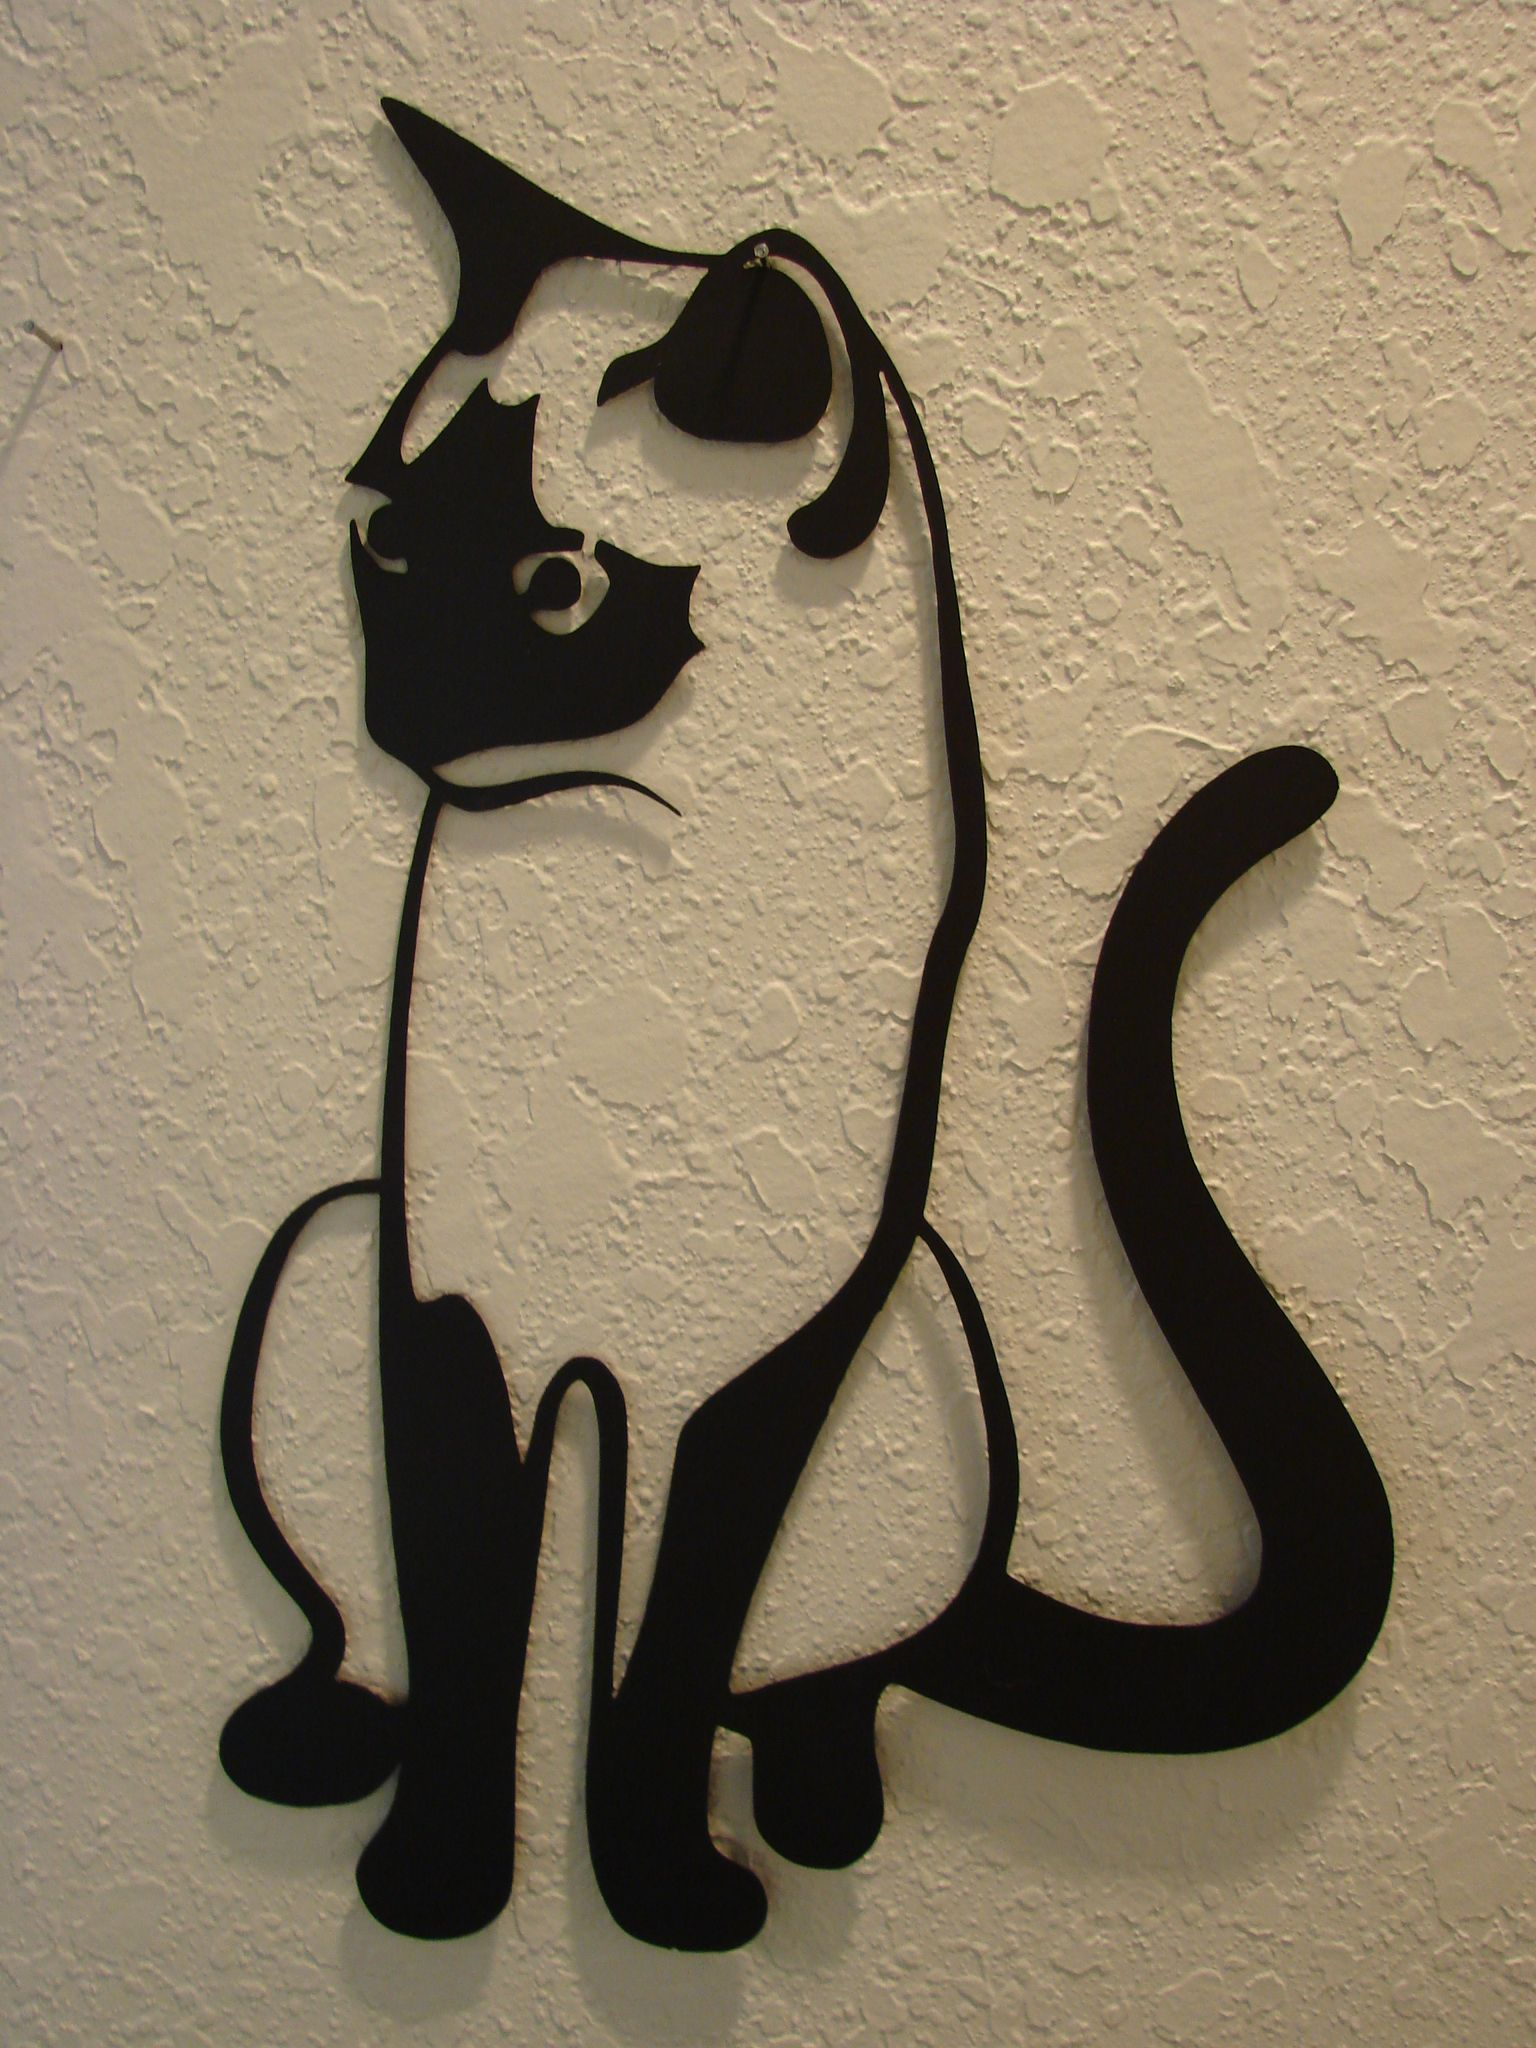 Tall Metal Wall Art 16 Gauge Plasma Cut Kitty Cat Metal Wall Art   Plasma Torch Cnc